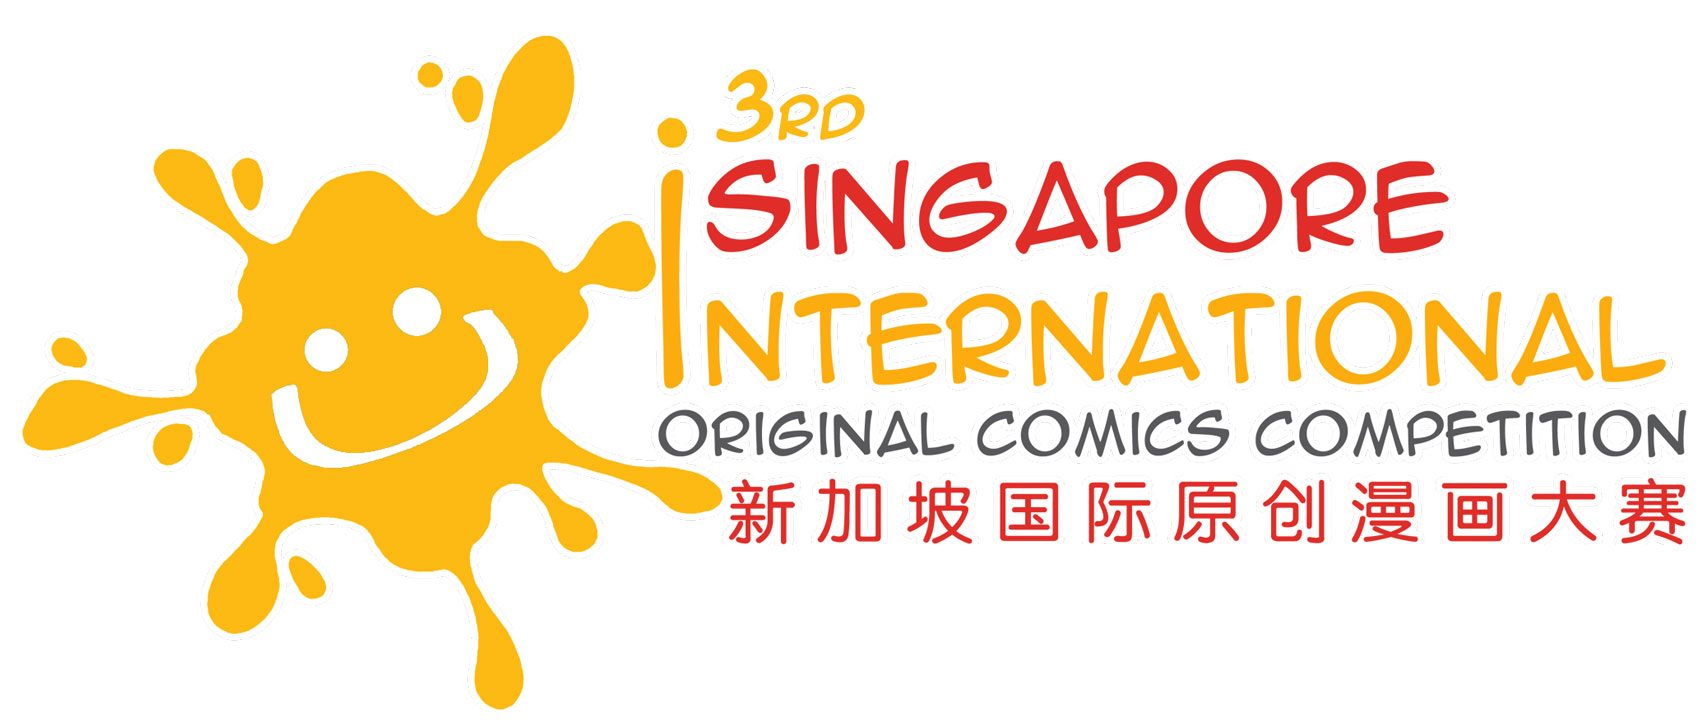 Singapore International Original Comics Competition